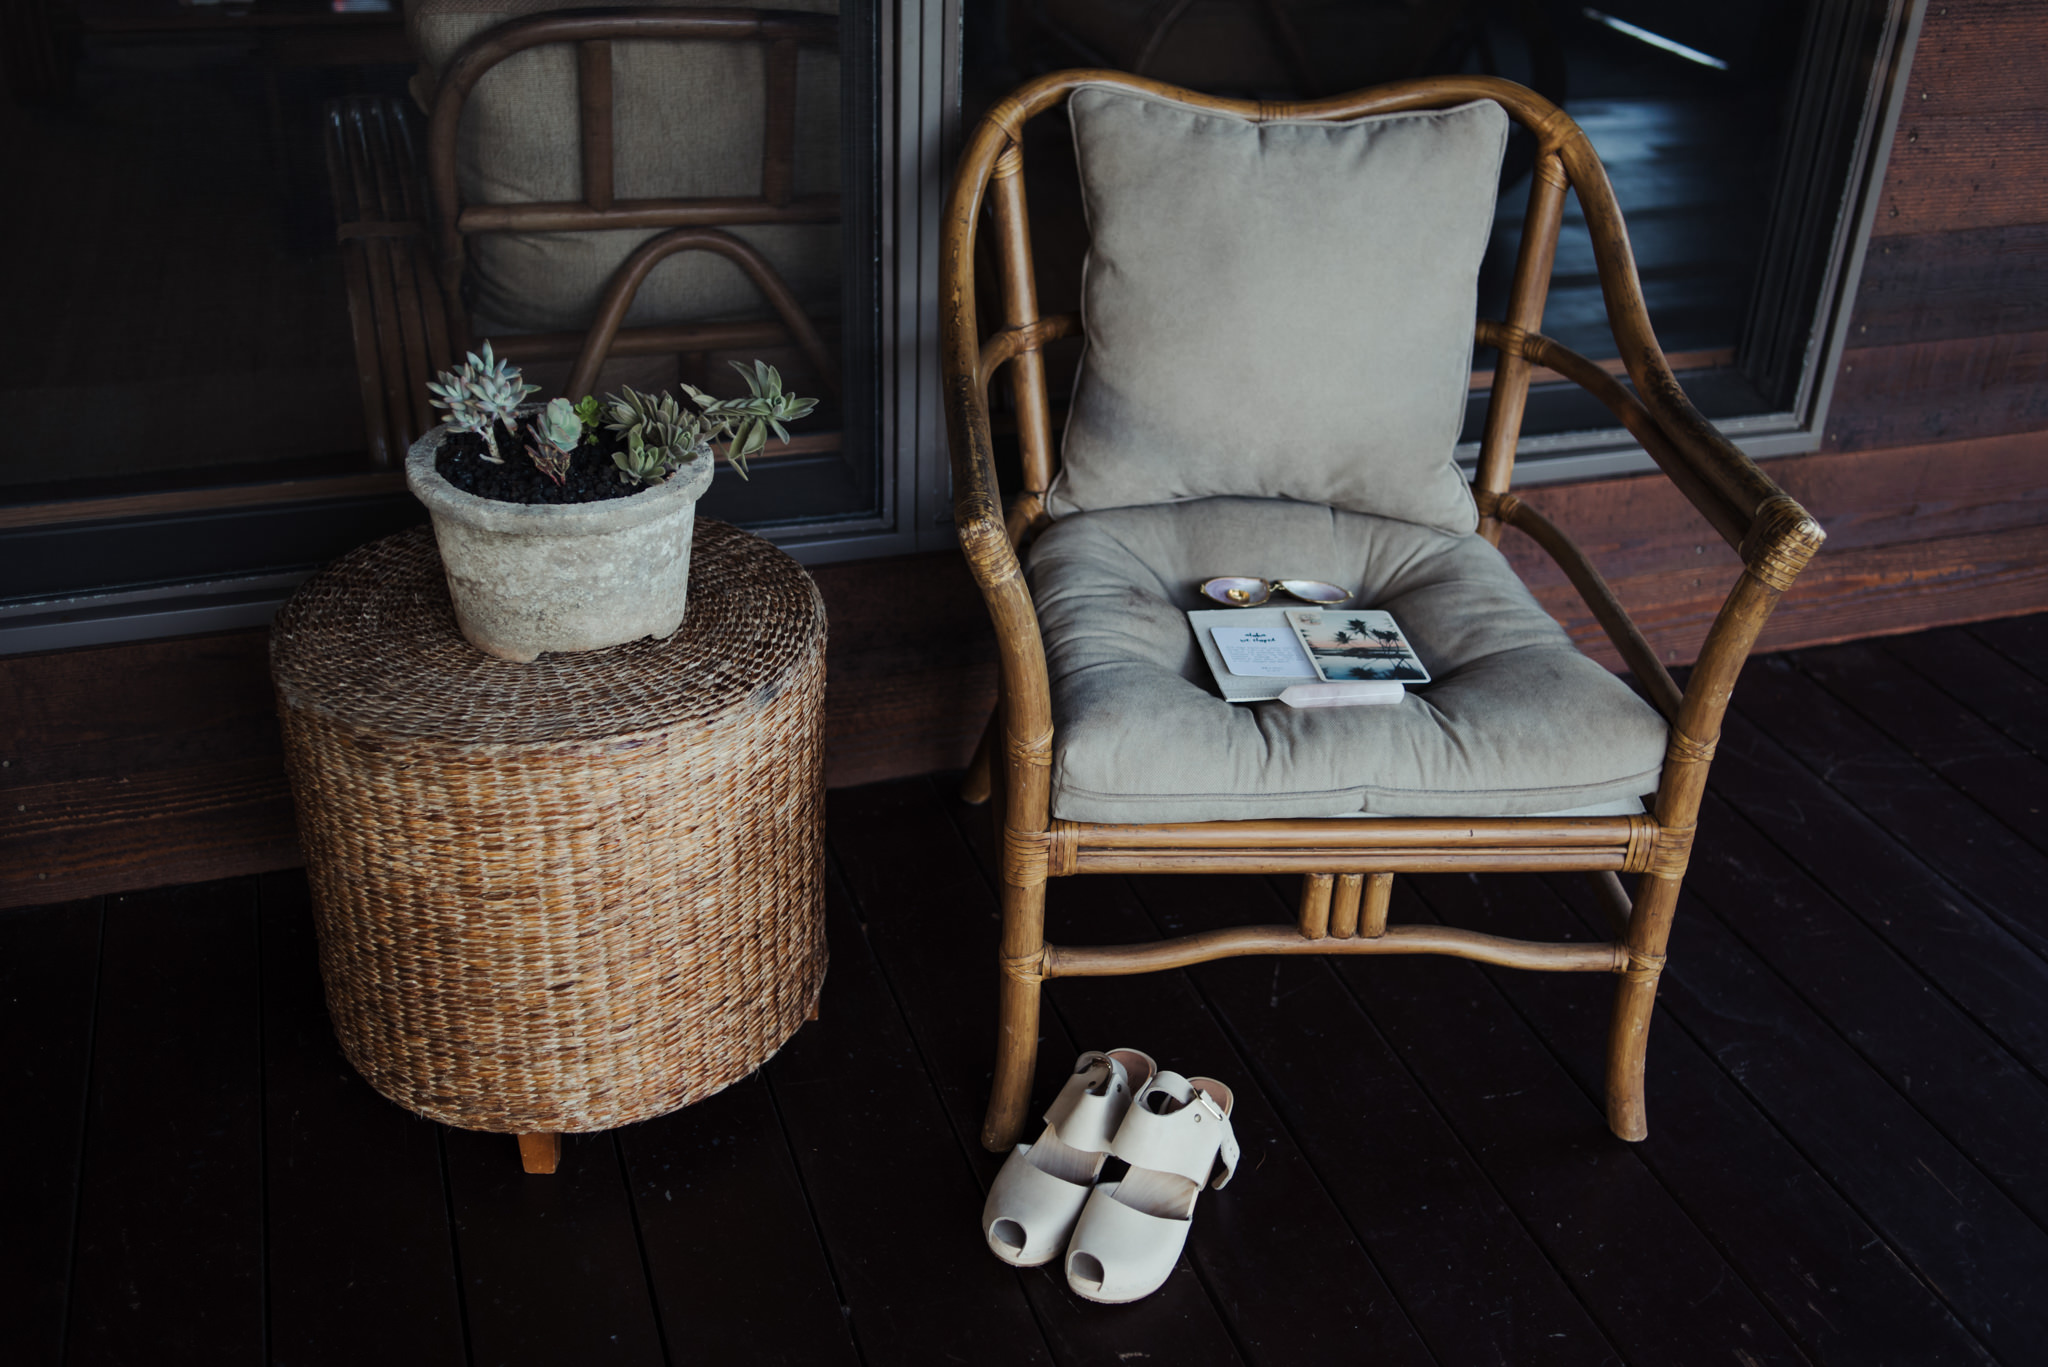 Wedding shoes and invitation on chair